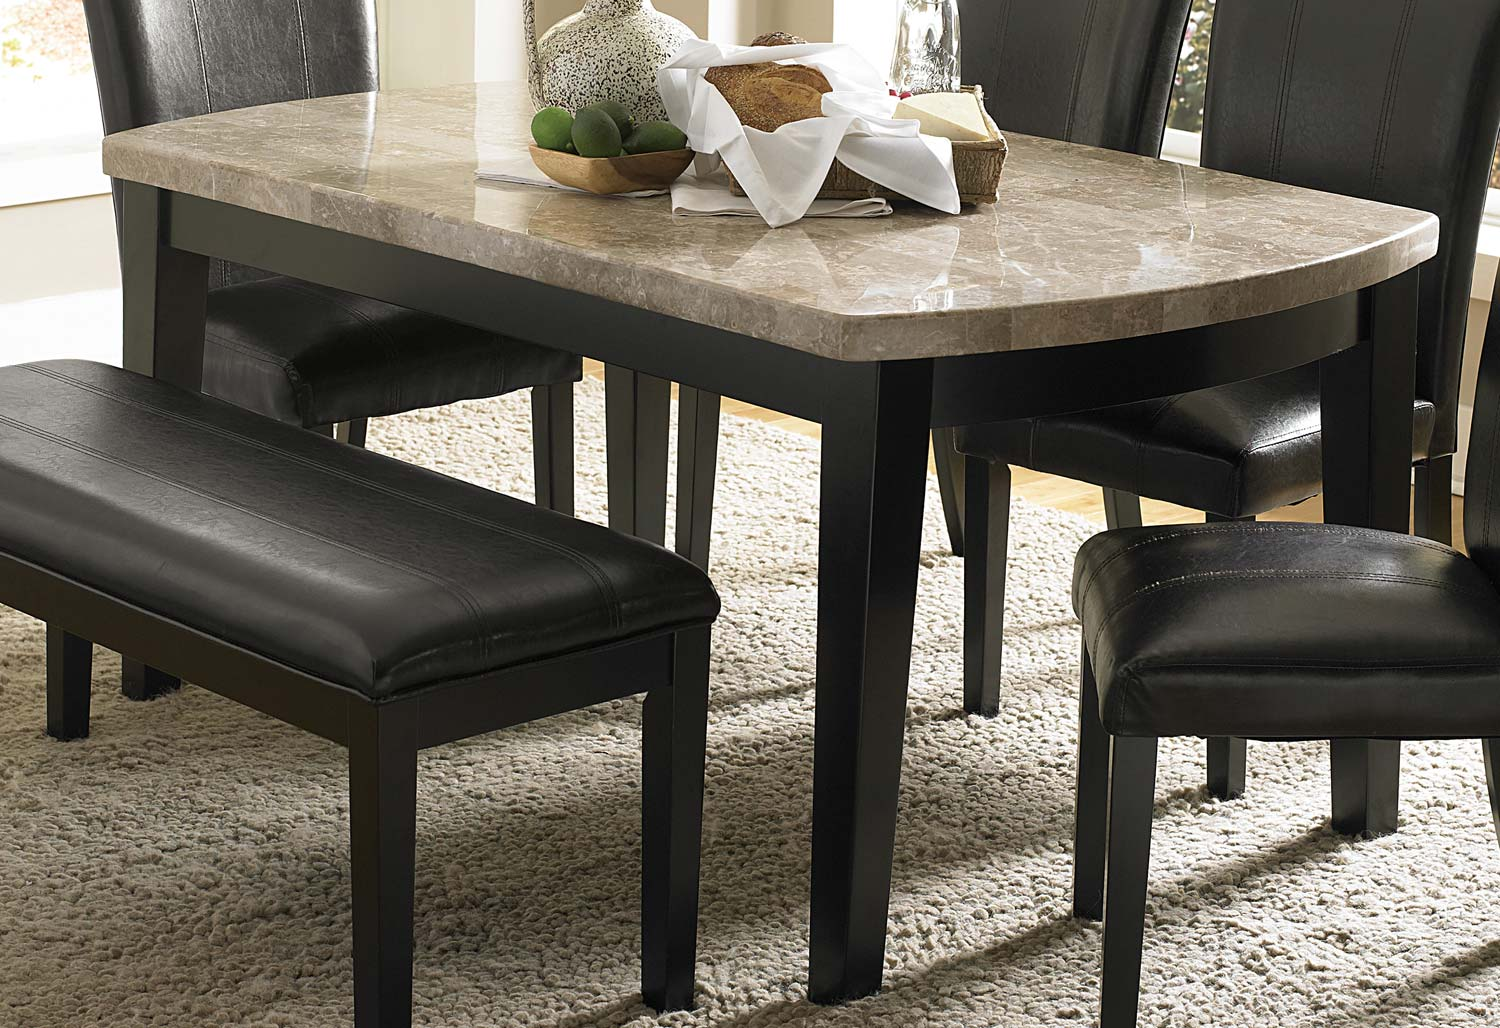 Homelegance Cristo Dining Table - Black Wood - Marble Top